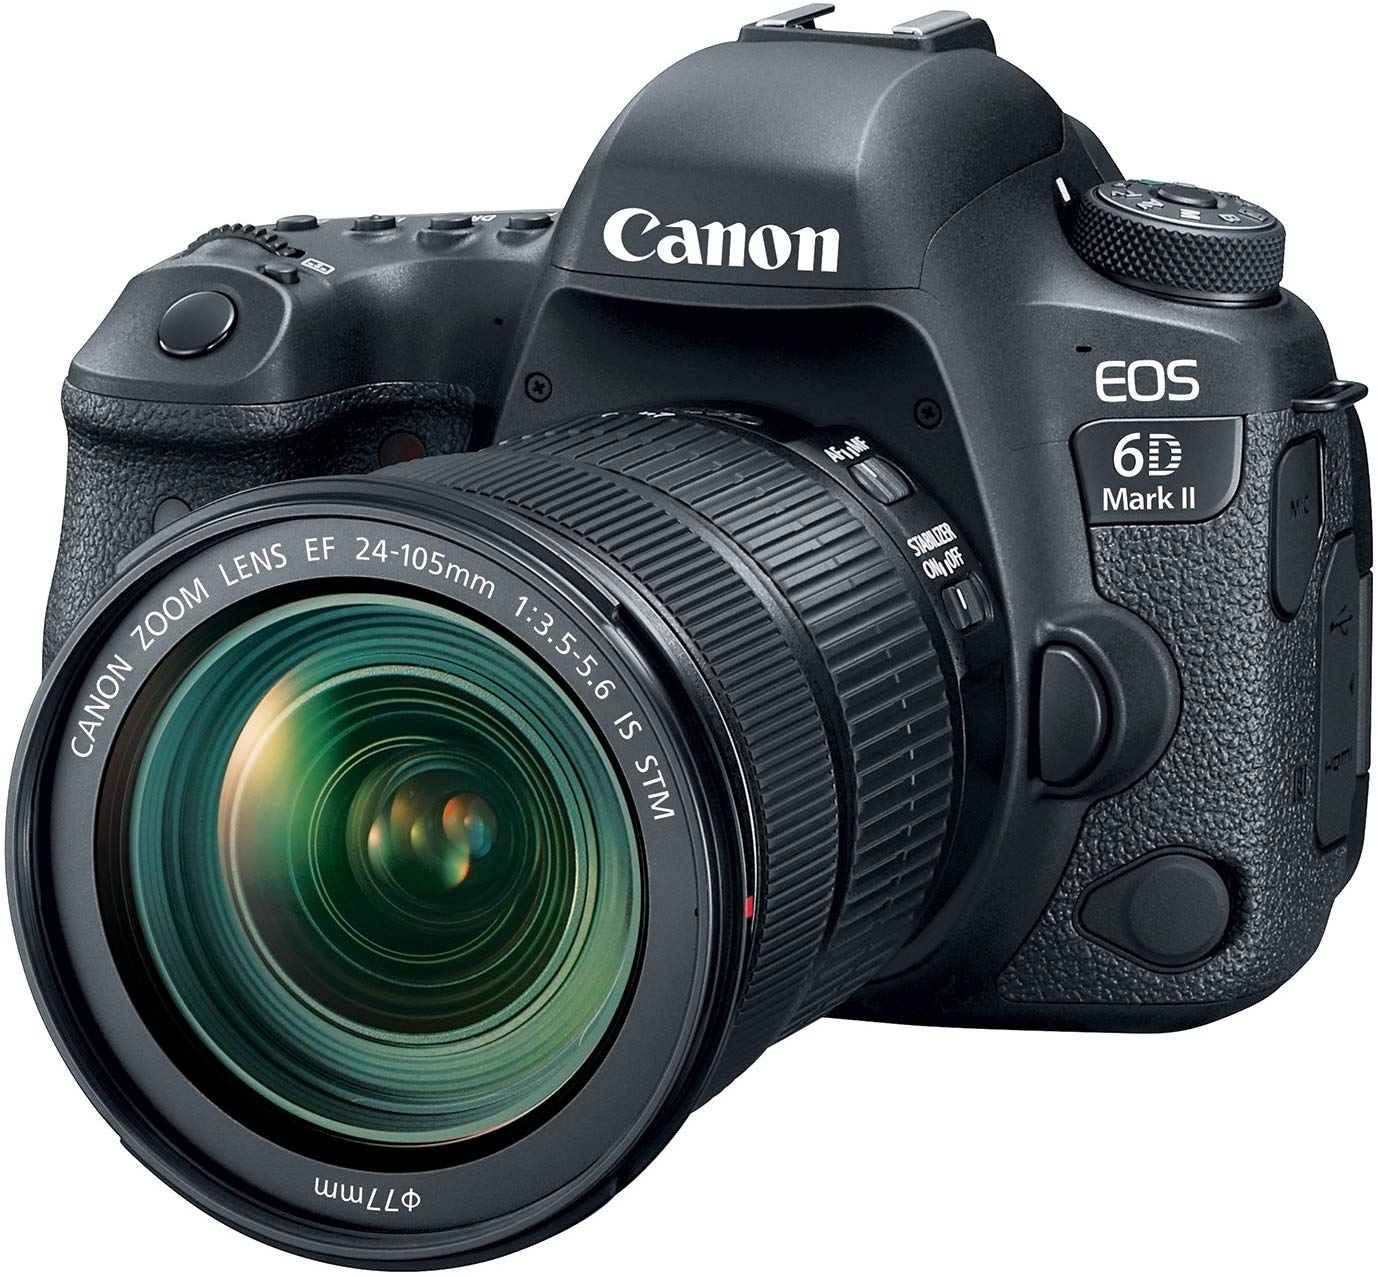 Canon EOS 6D Mark II Review image